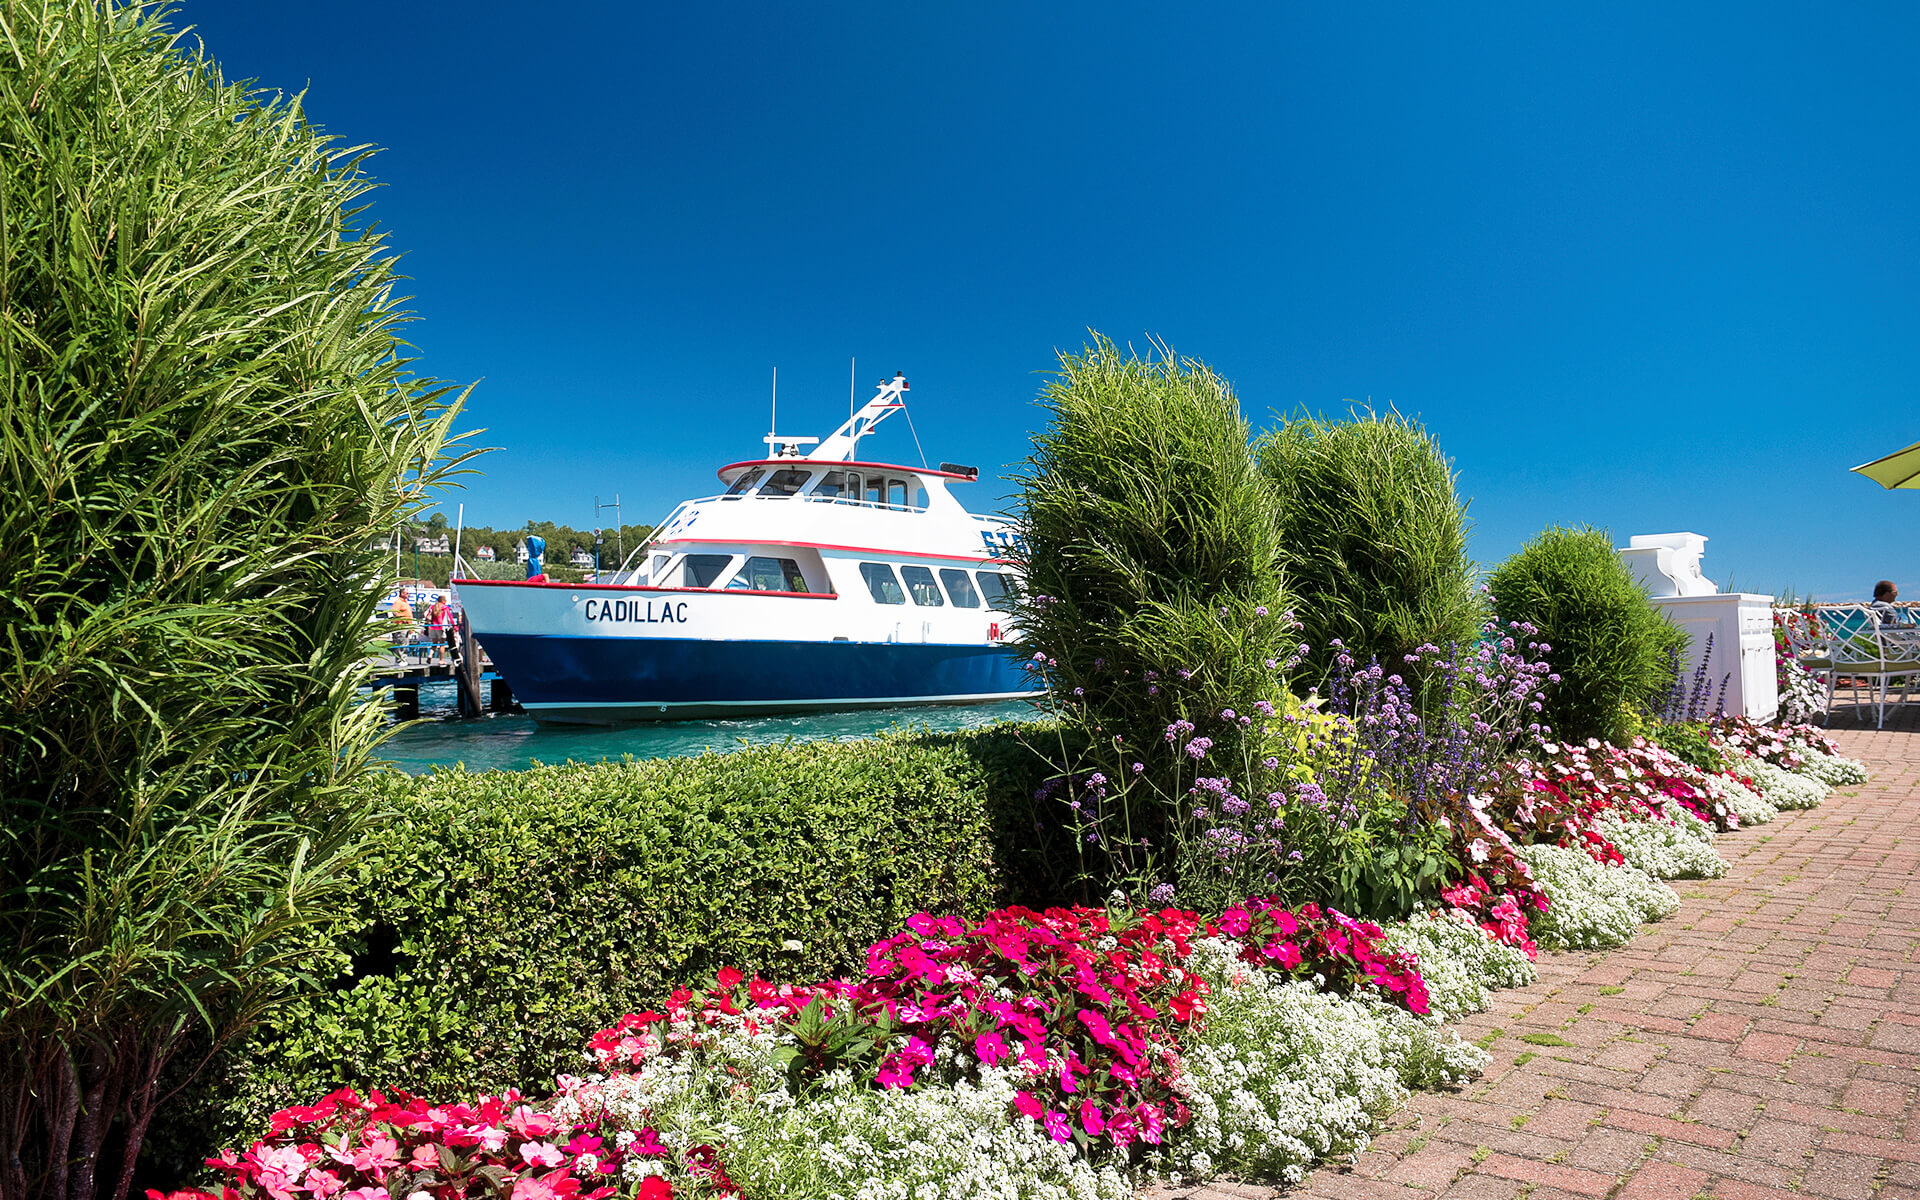 view of a yacht seen through hedges and pink floral landscaping